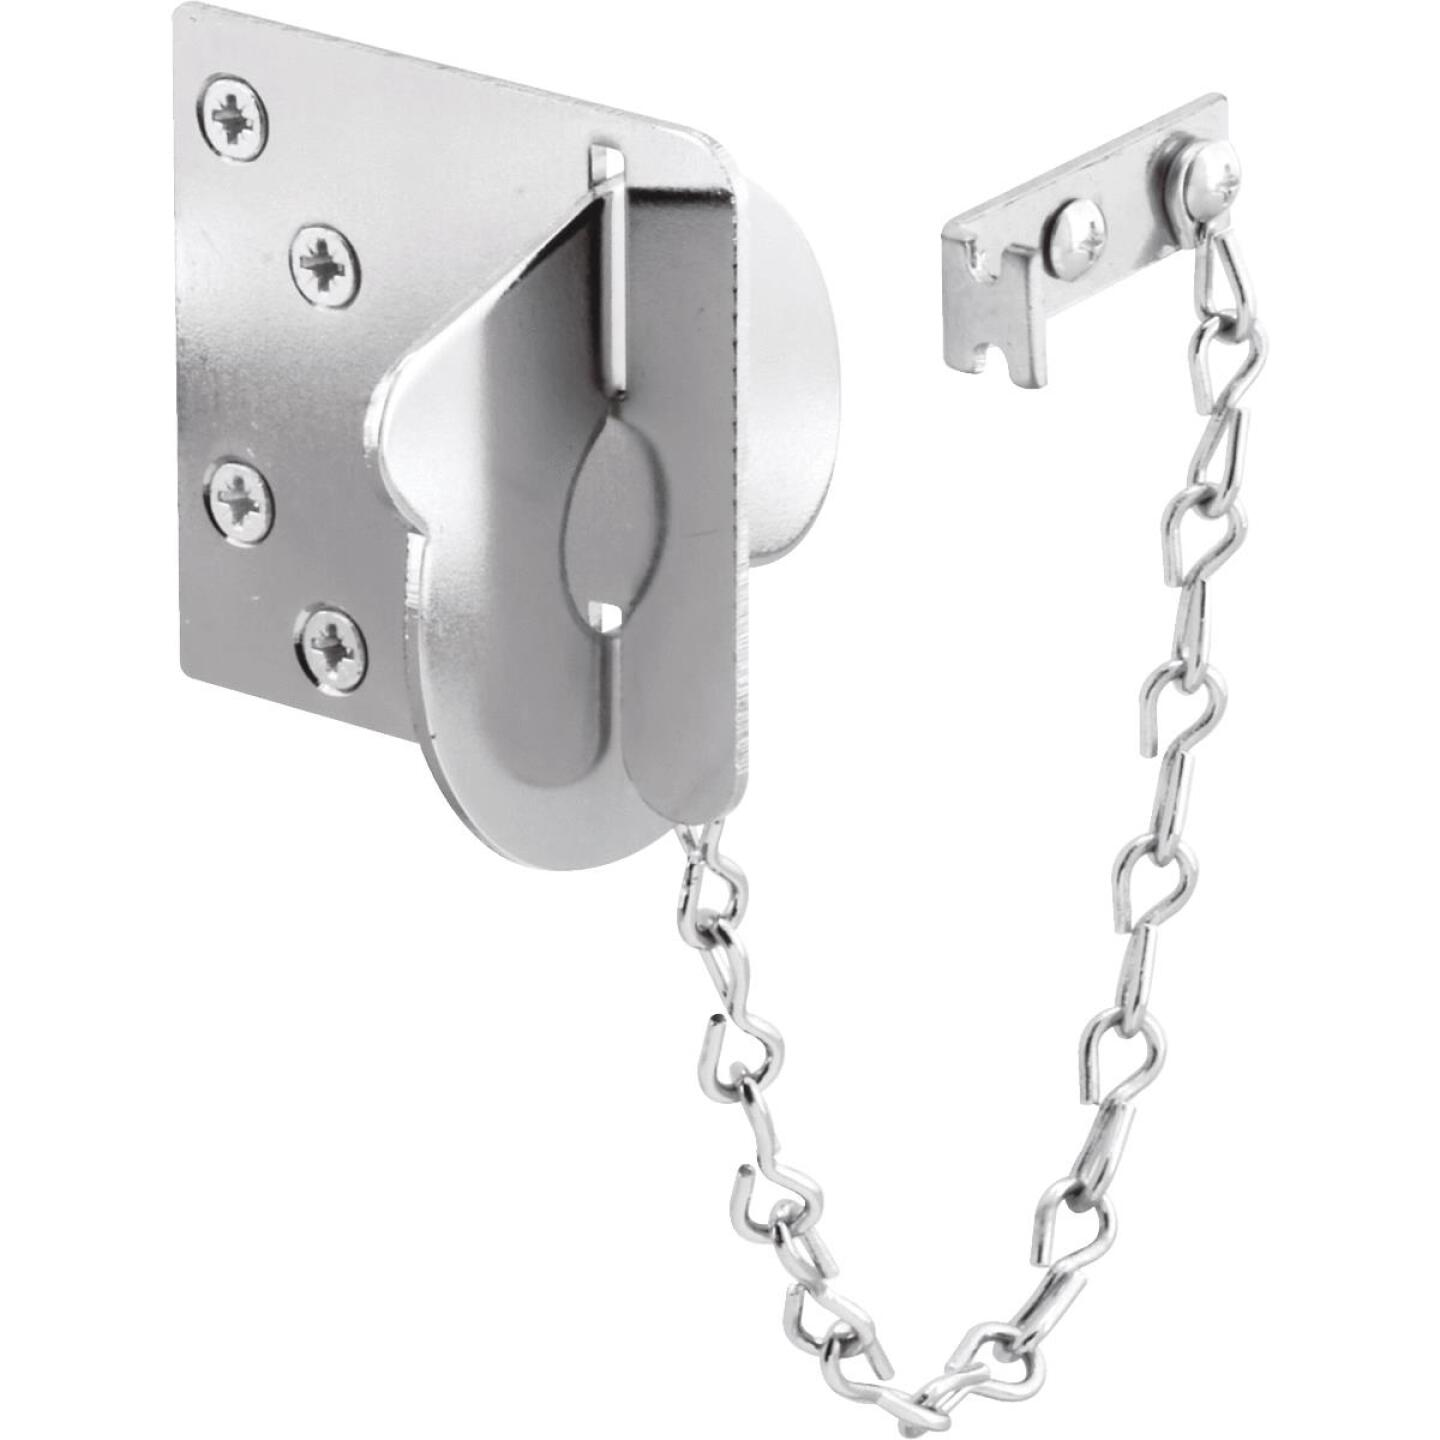 Defender Security Chrome Texas Security Bolt Ring Chain Door Lock Image 1